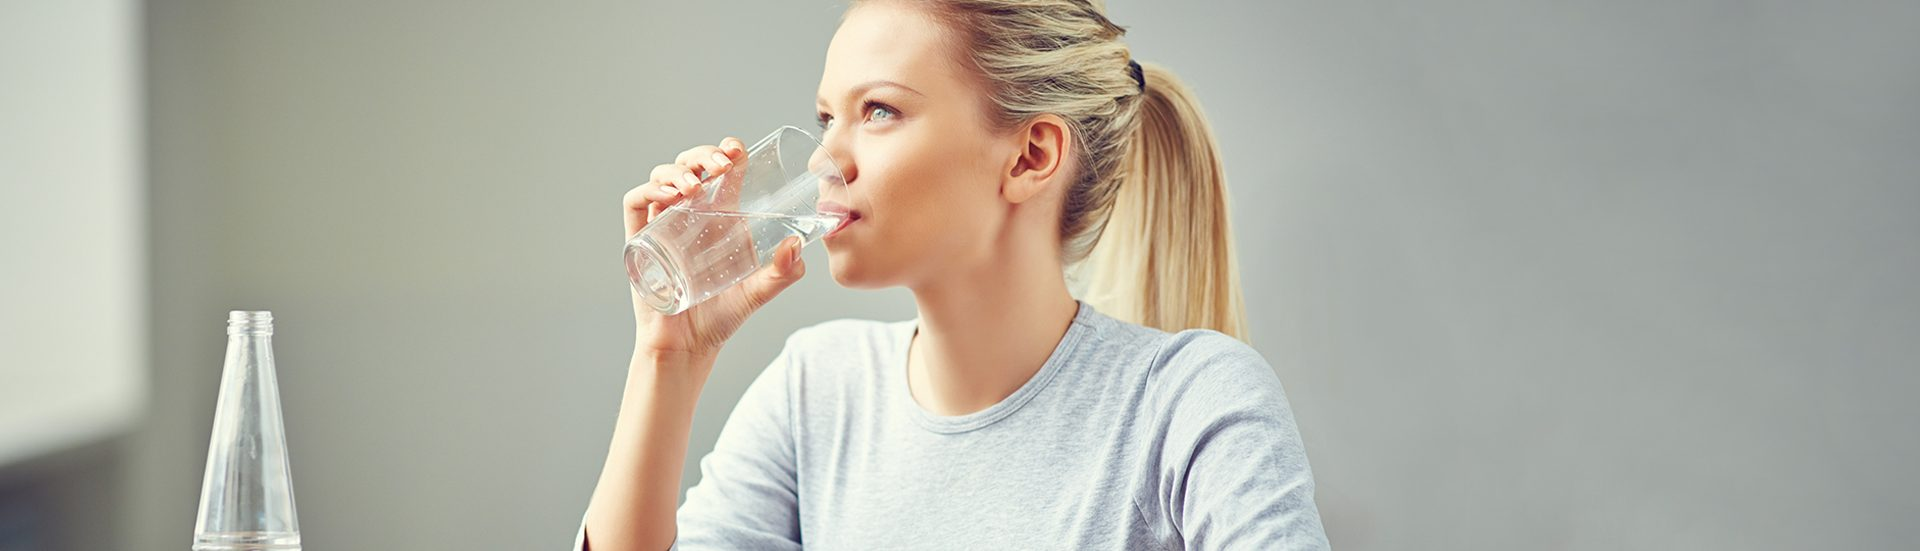 Six Dehydration Facts That May Surprise You